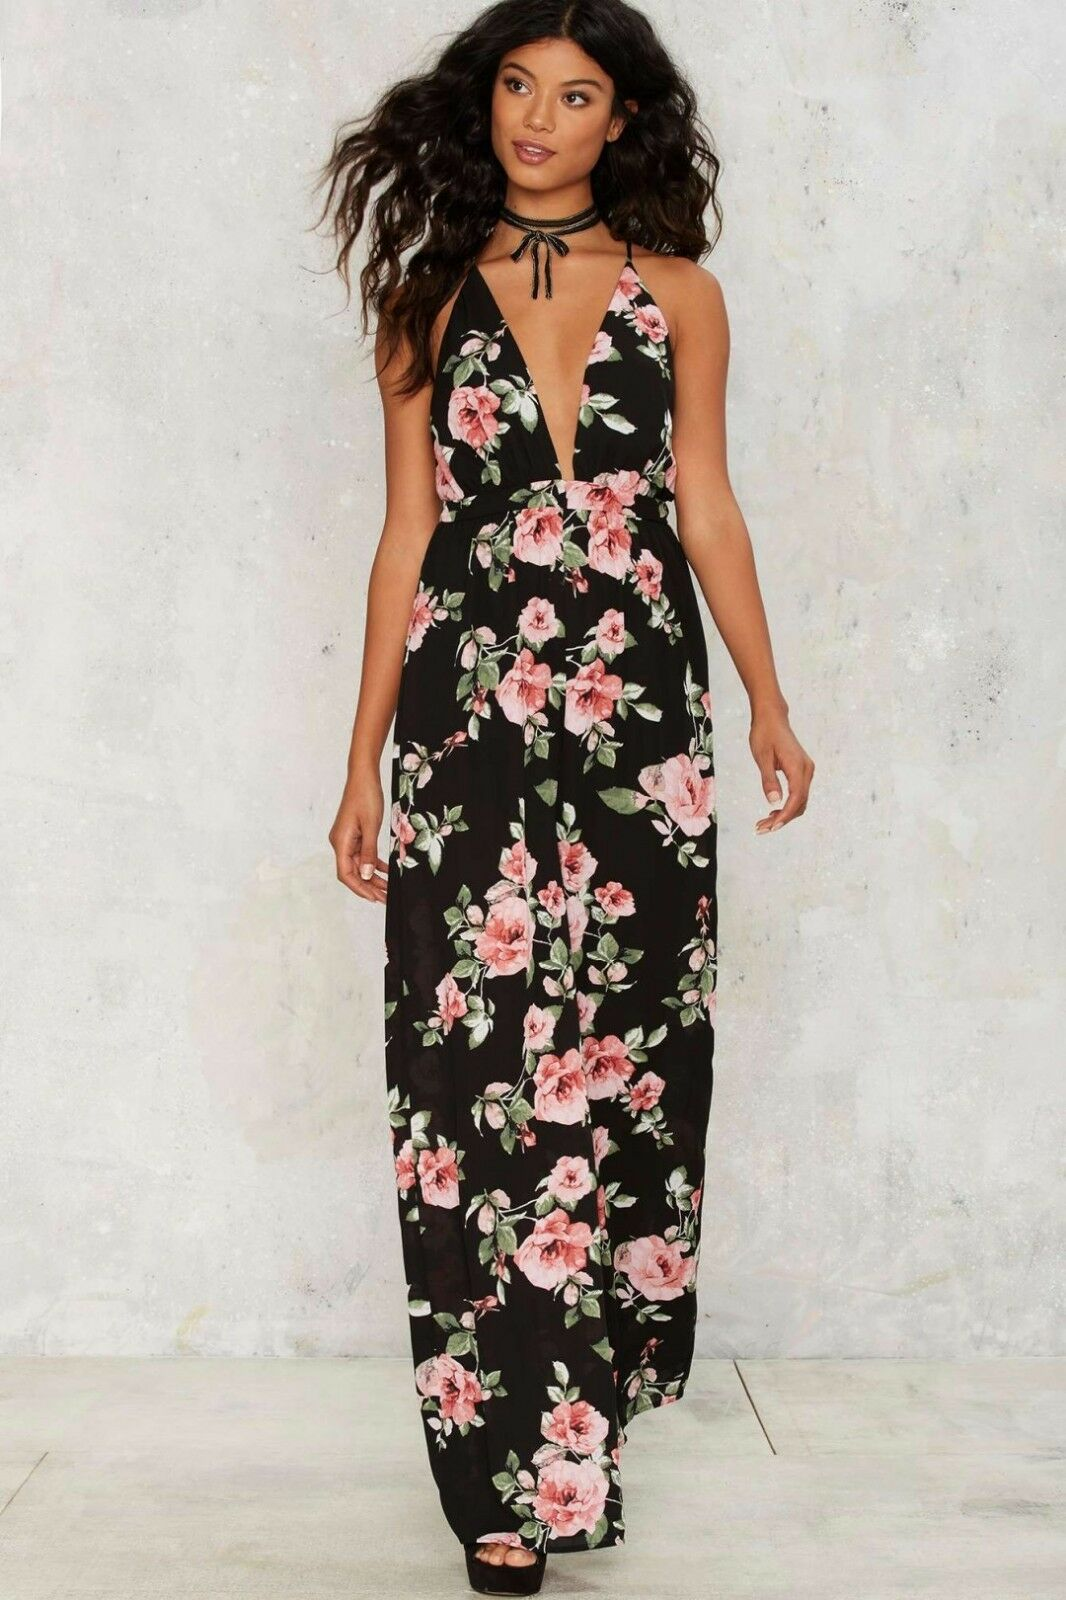 Nasty Gal 4SIENNAI Nothing But pinks Floral Jumpsuit Size S M  78